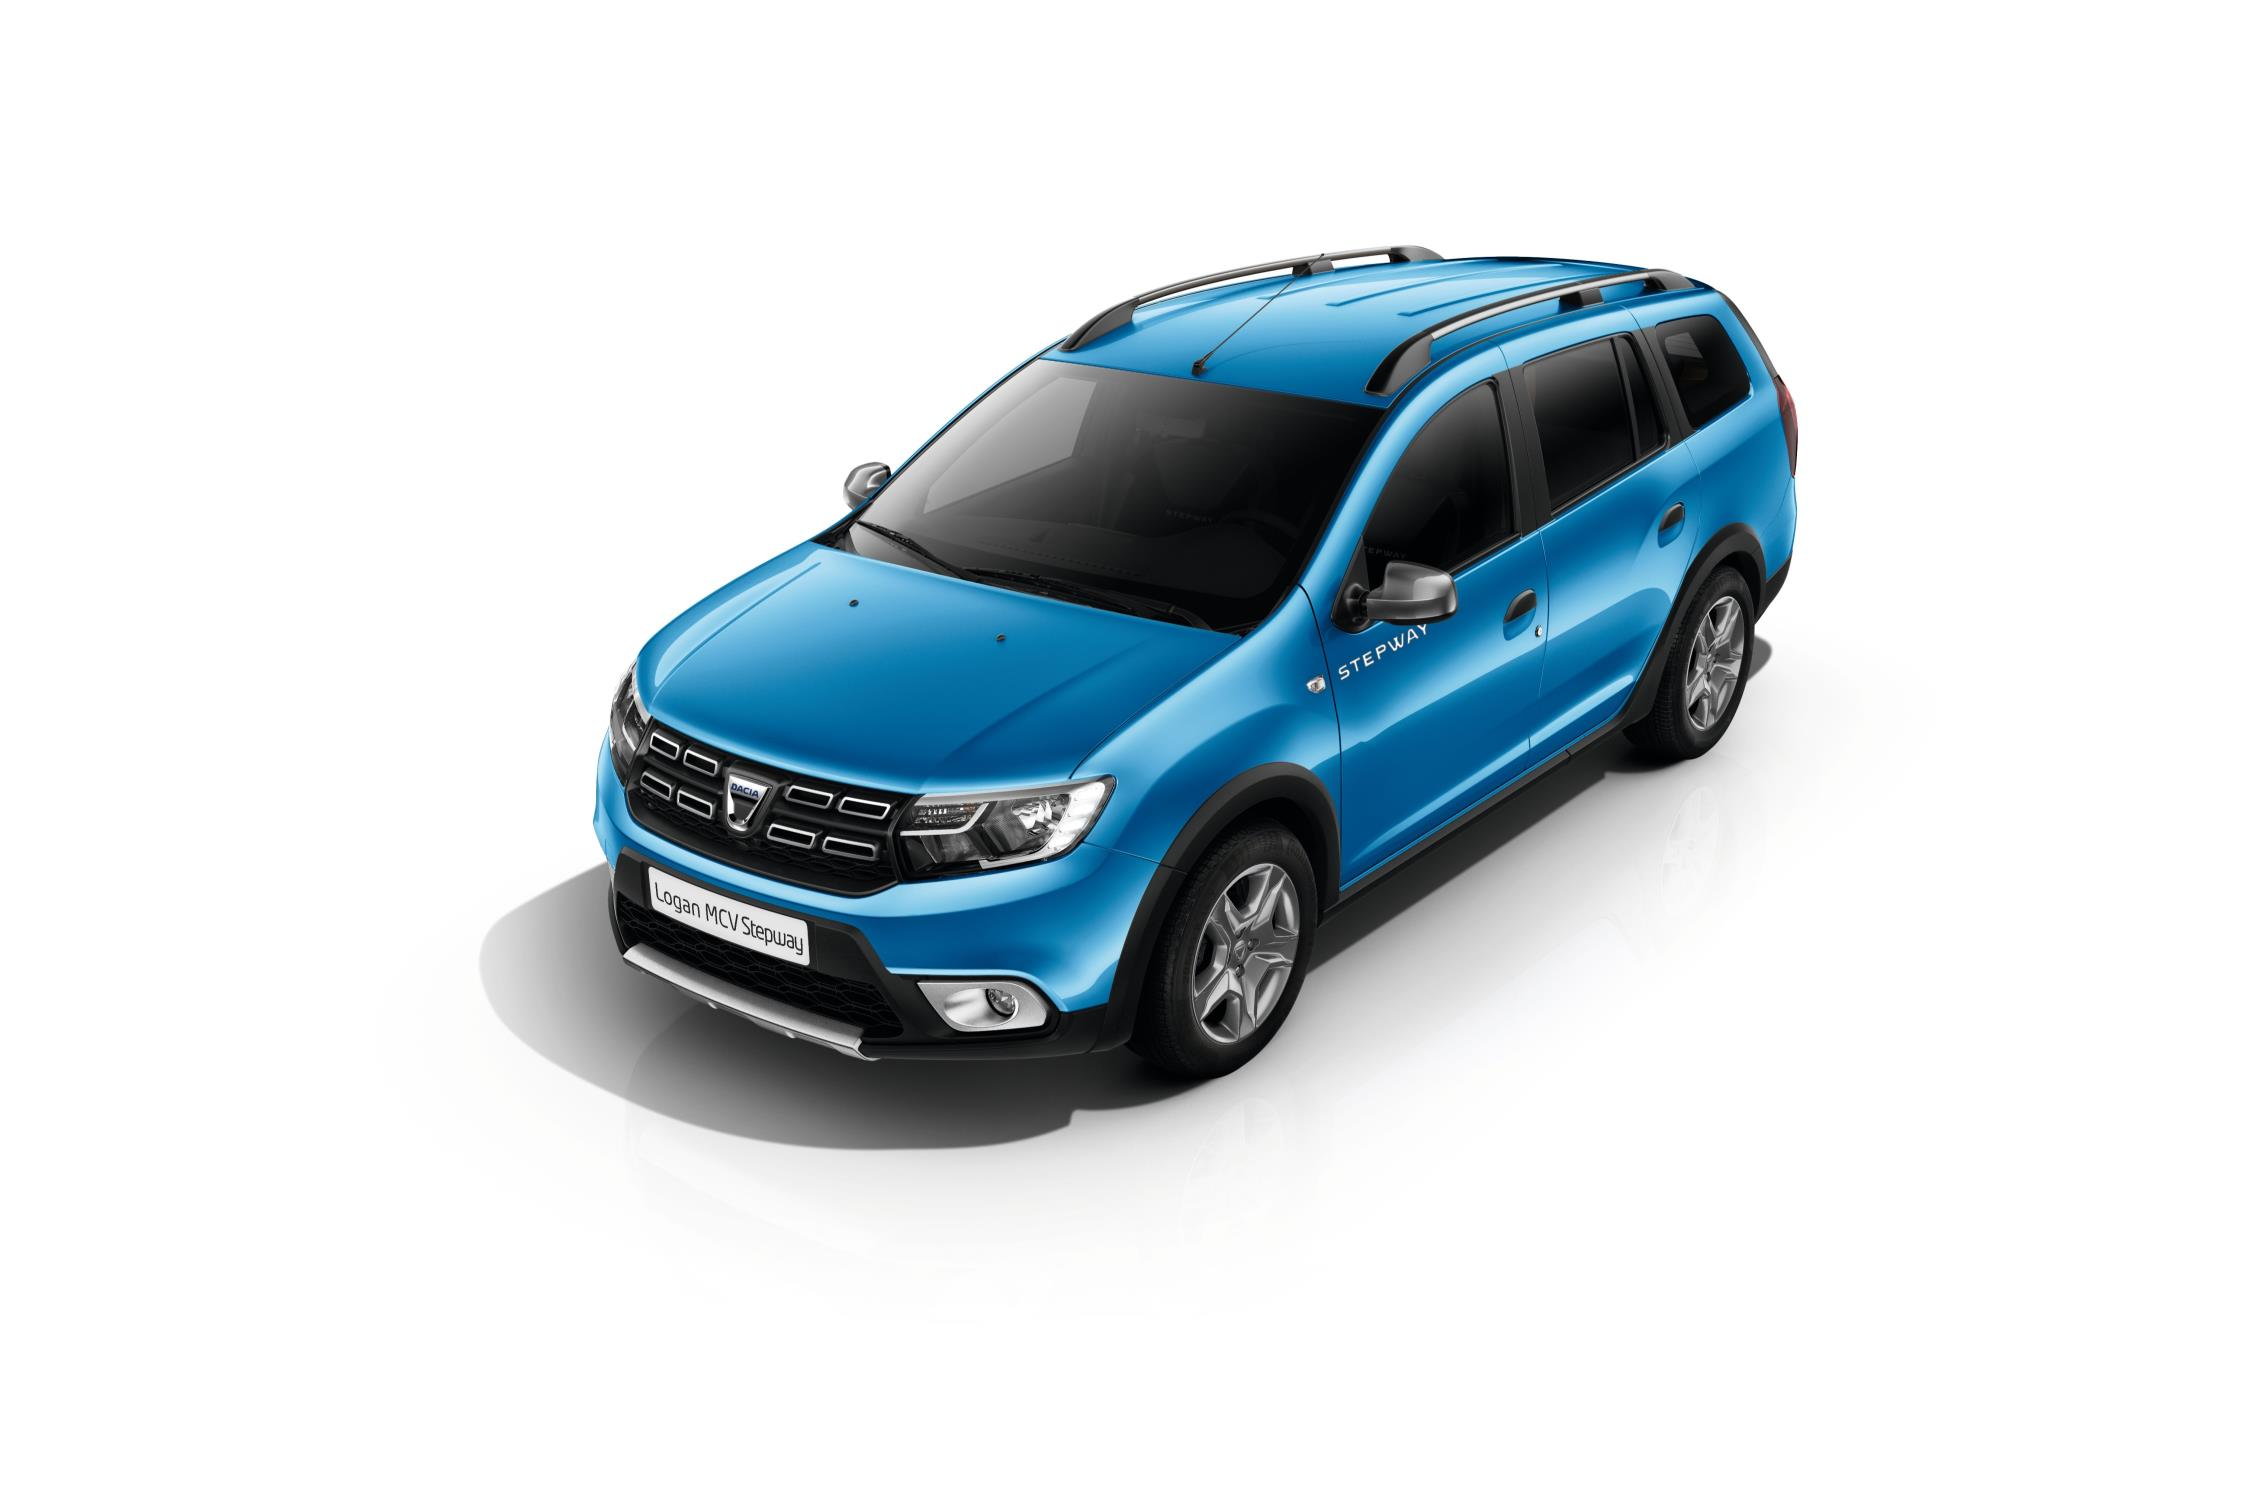 dacia expands model lineup with logan mcv stepway. Black Bedroom Furniture Sets. Home Design Ideas